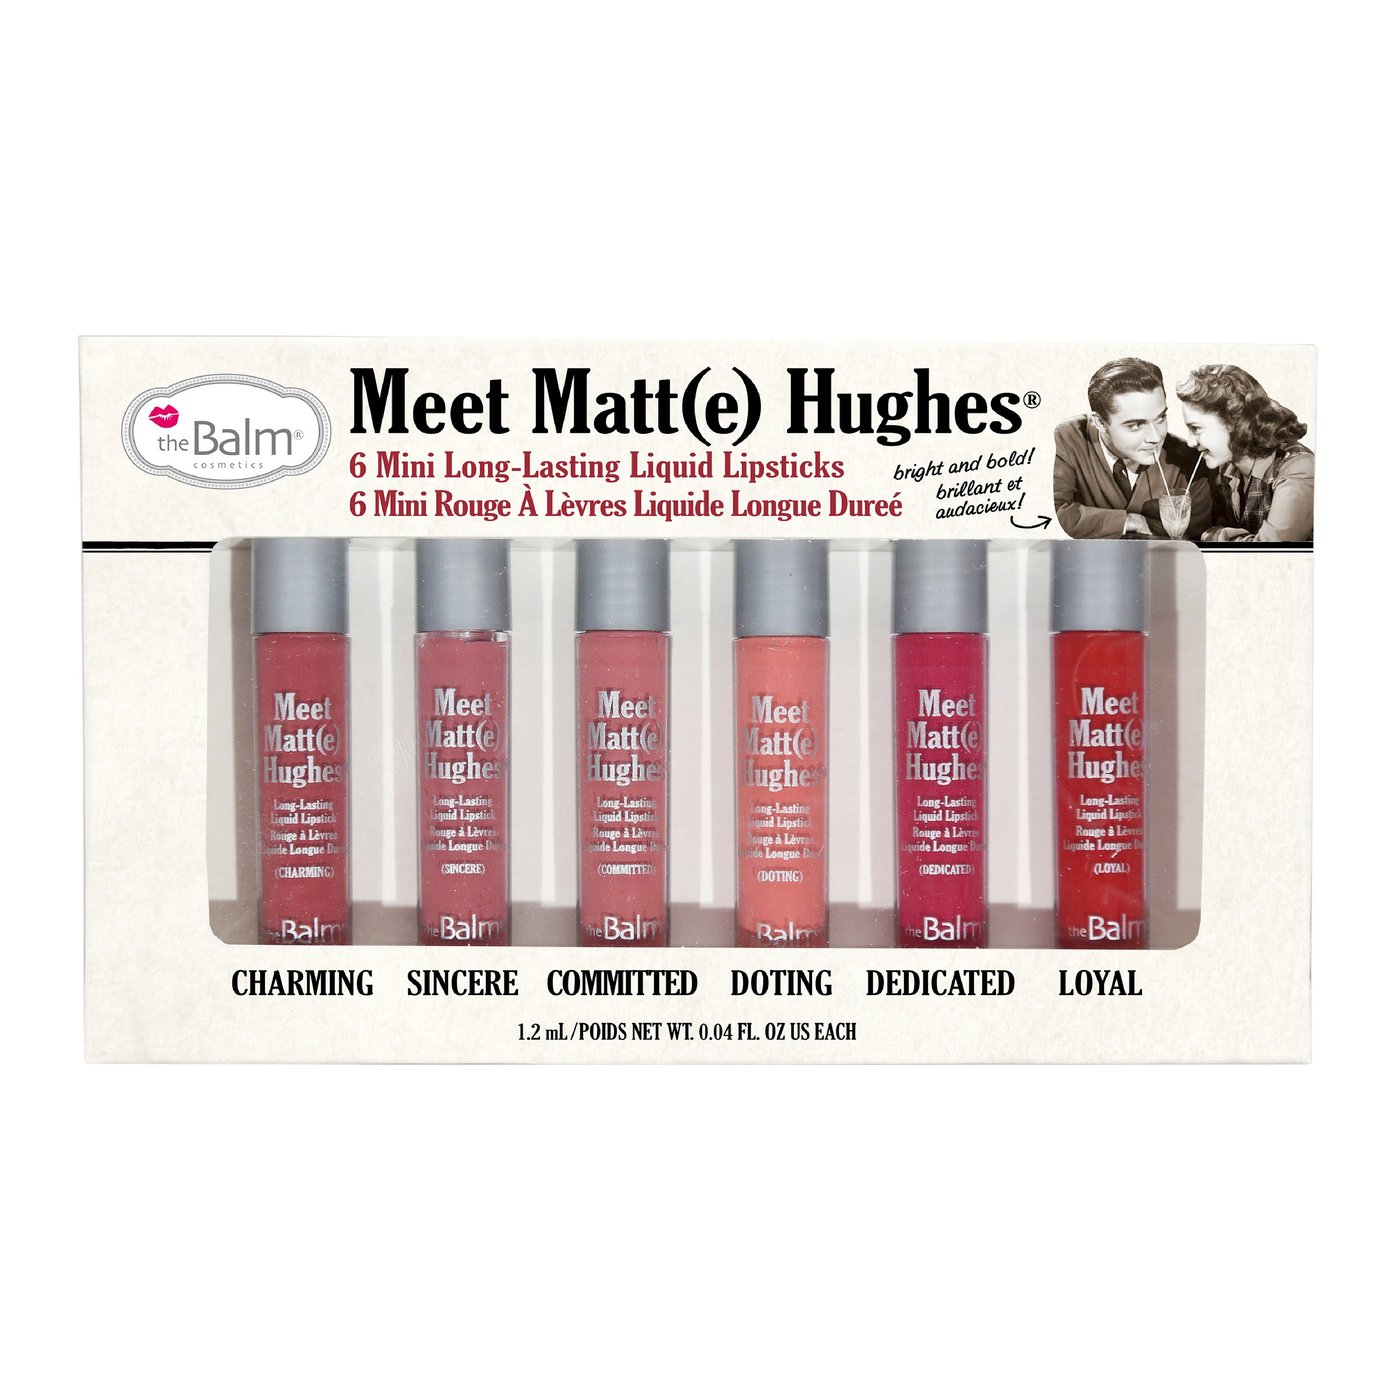 theBalm Meet Matte Hughes Lipsticks Kit - Vol 1